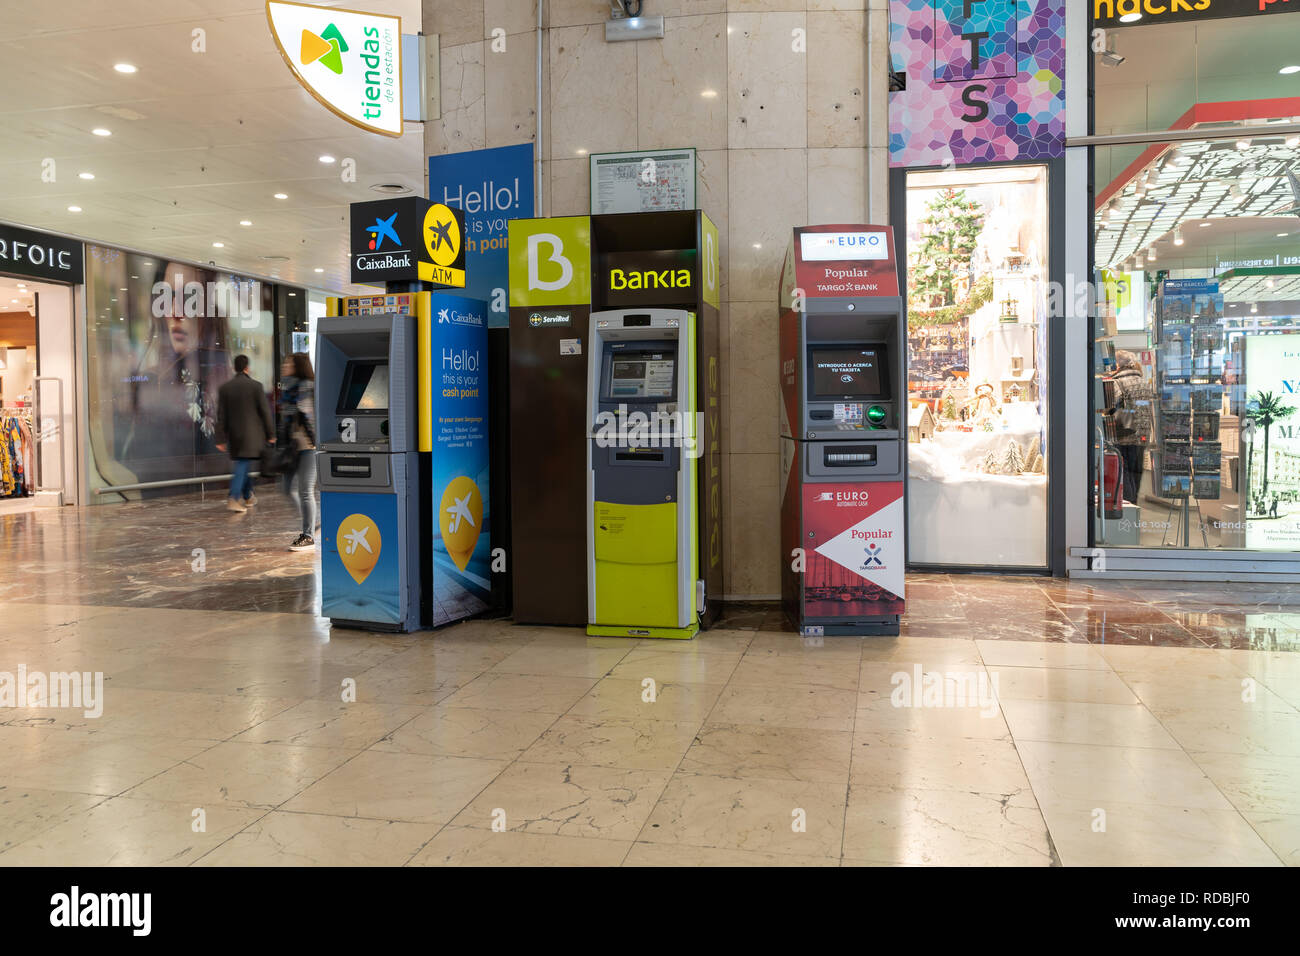 ATM of the Banco Popular, Bankia and Caixa Bank placed in the train station of Barcelona Sants, Servired, visa, euro6000, American Express, withdrawal - Stock Image